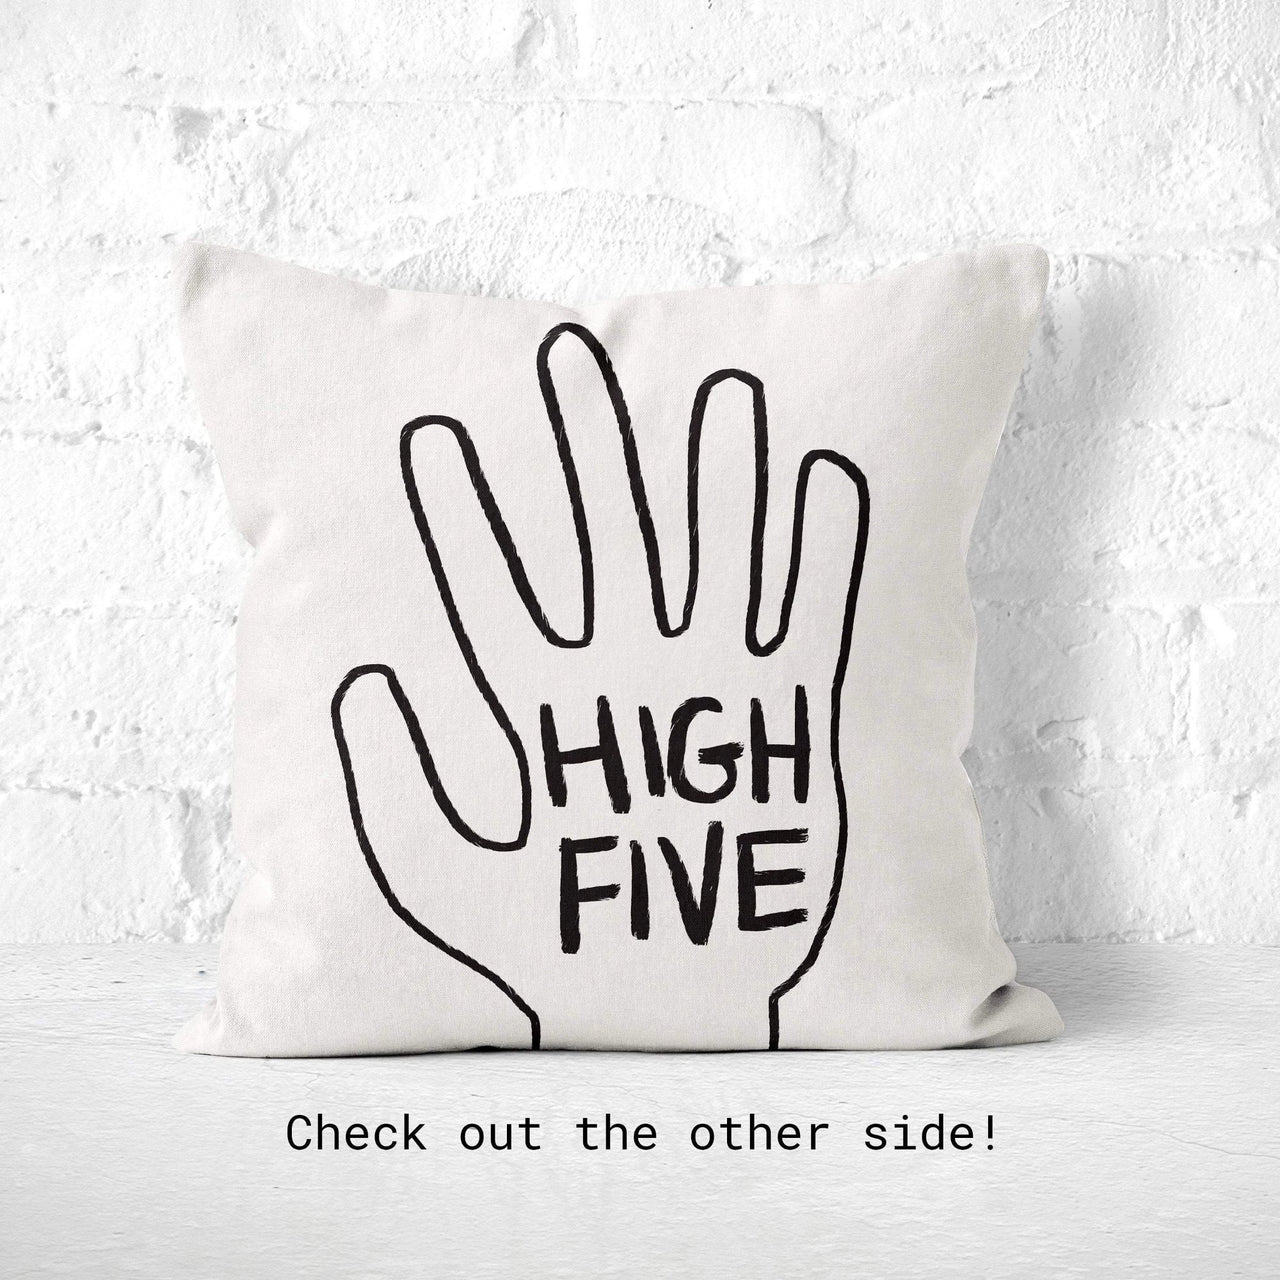 High Five Pillow: Funny Throw Pillow, Novelty Toss Cushion, Quirky Decor, Kids Room, Dorm Nursery